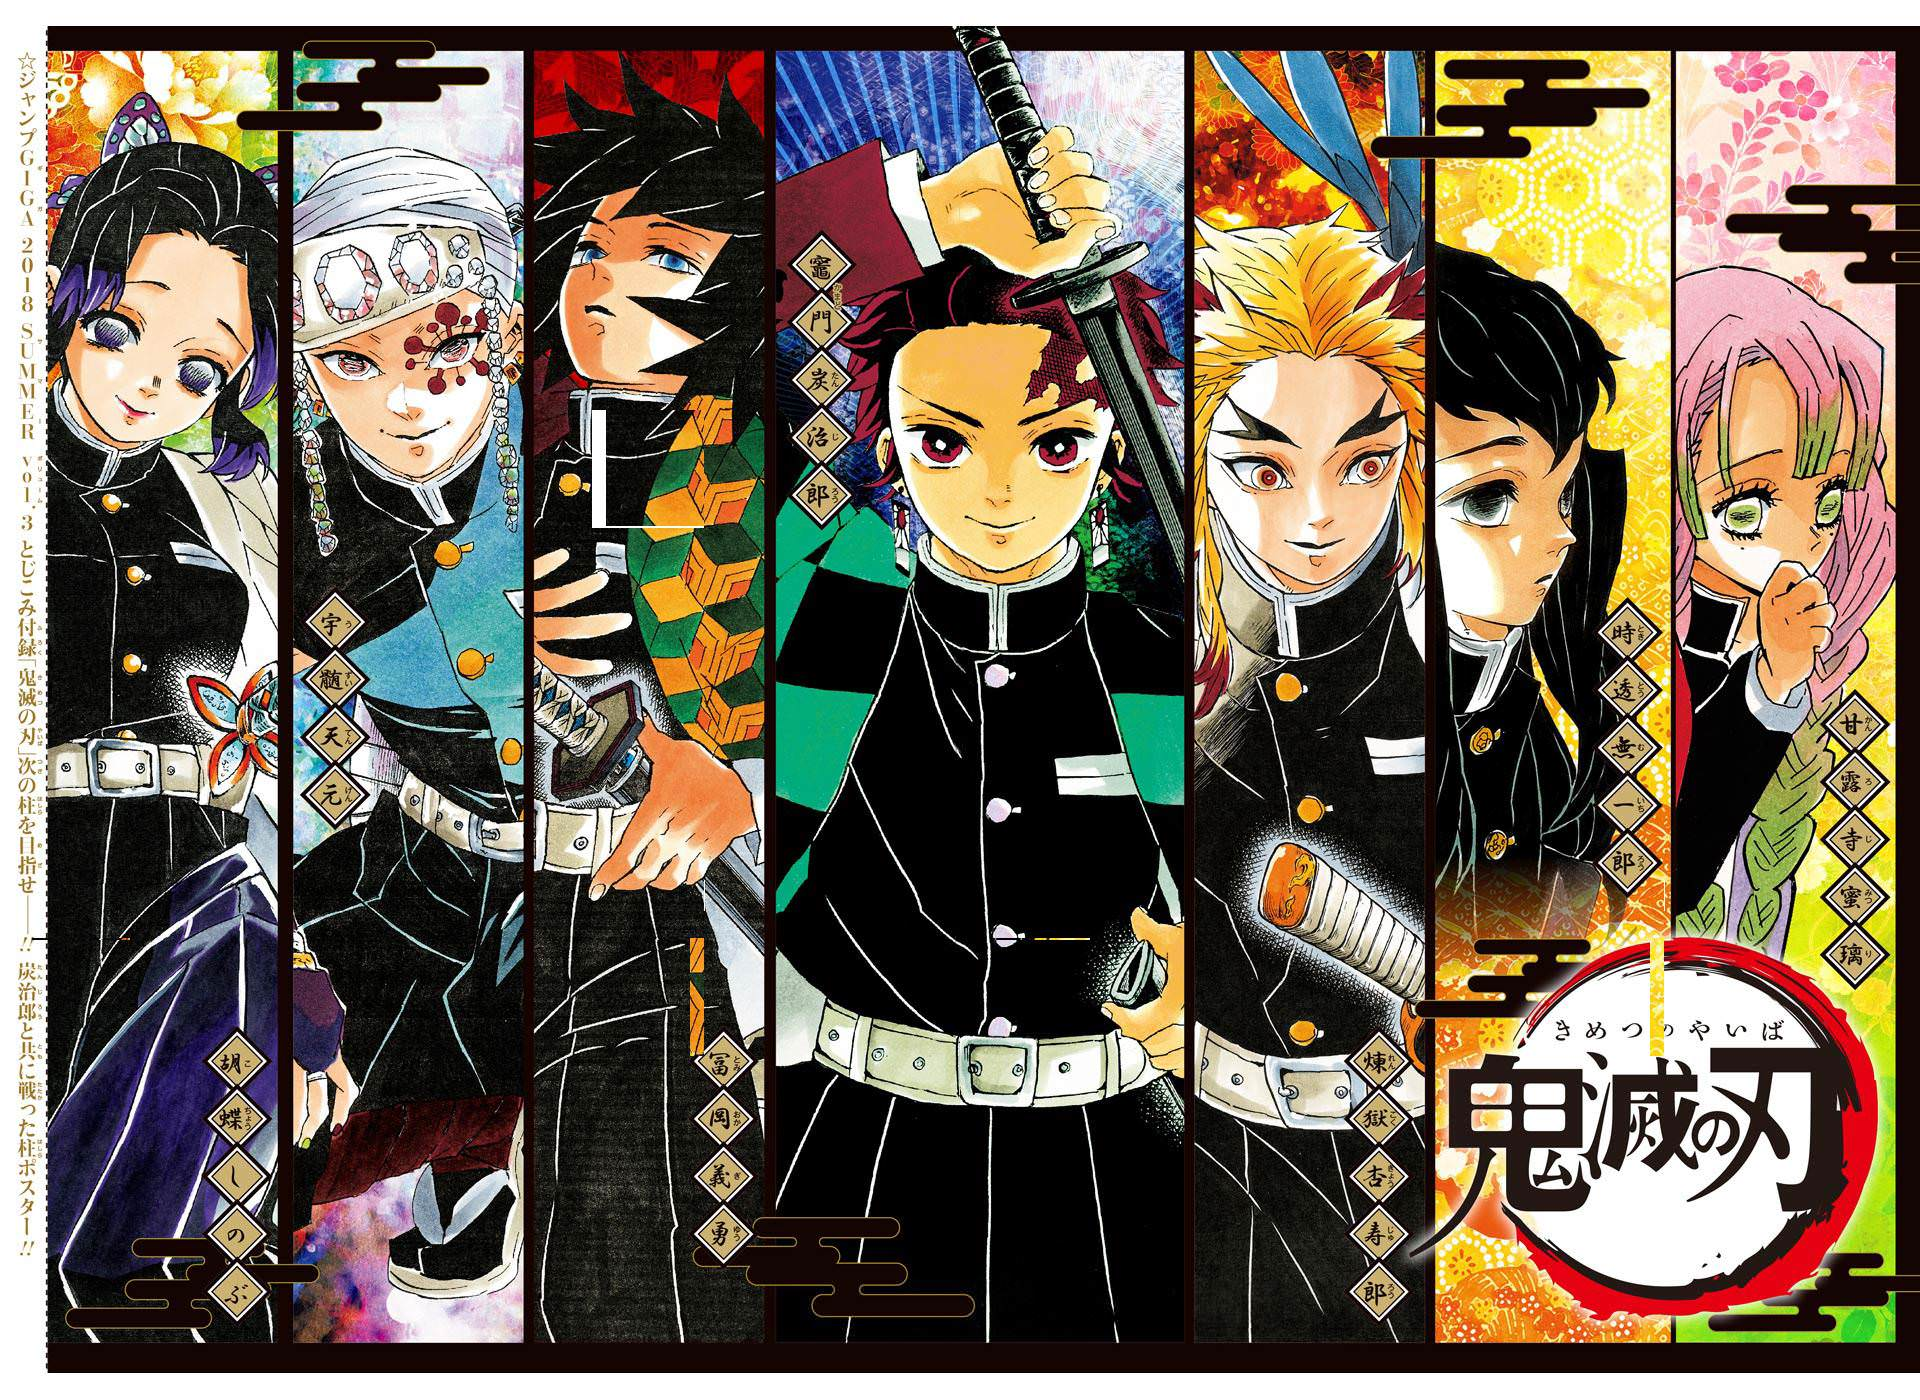 Kimetsu no Yaiba - Blade of Demon Destruction